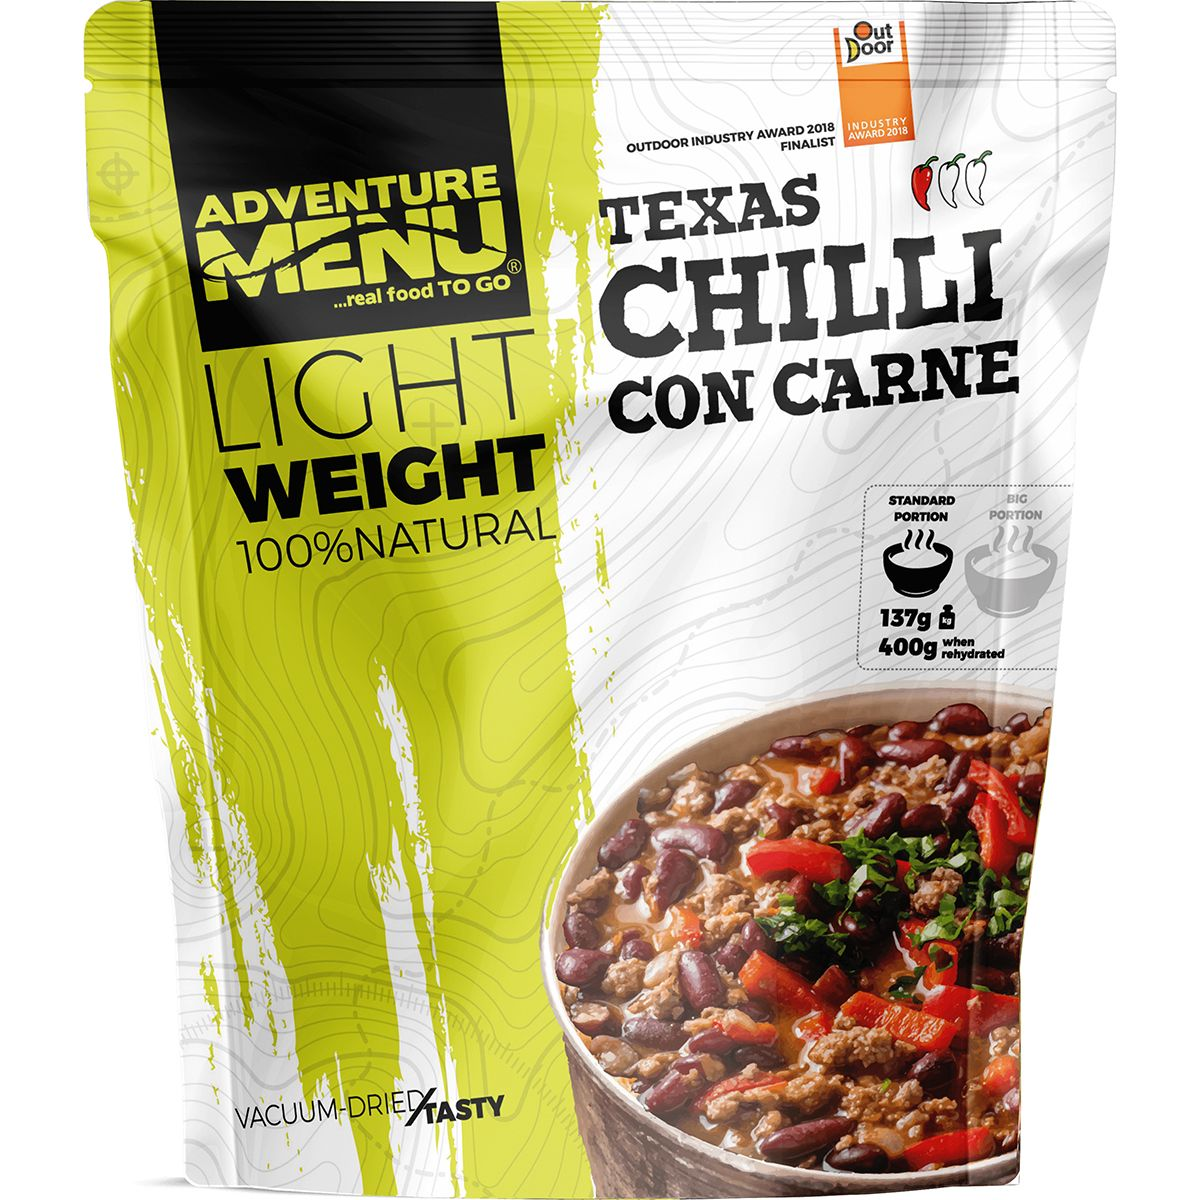 Image of Adventure Menu Chili con Carne